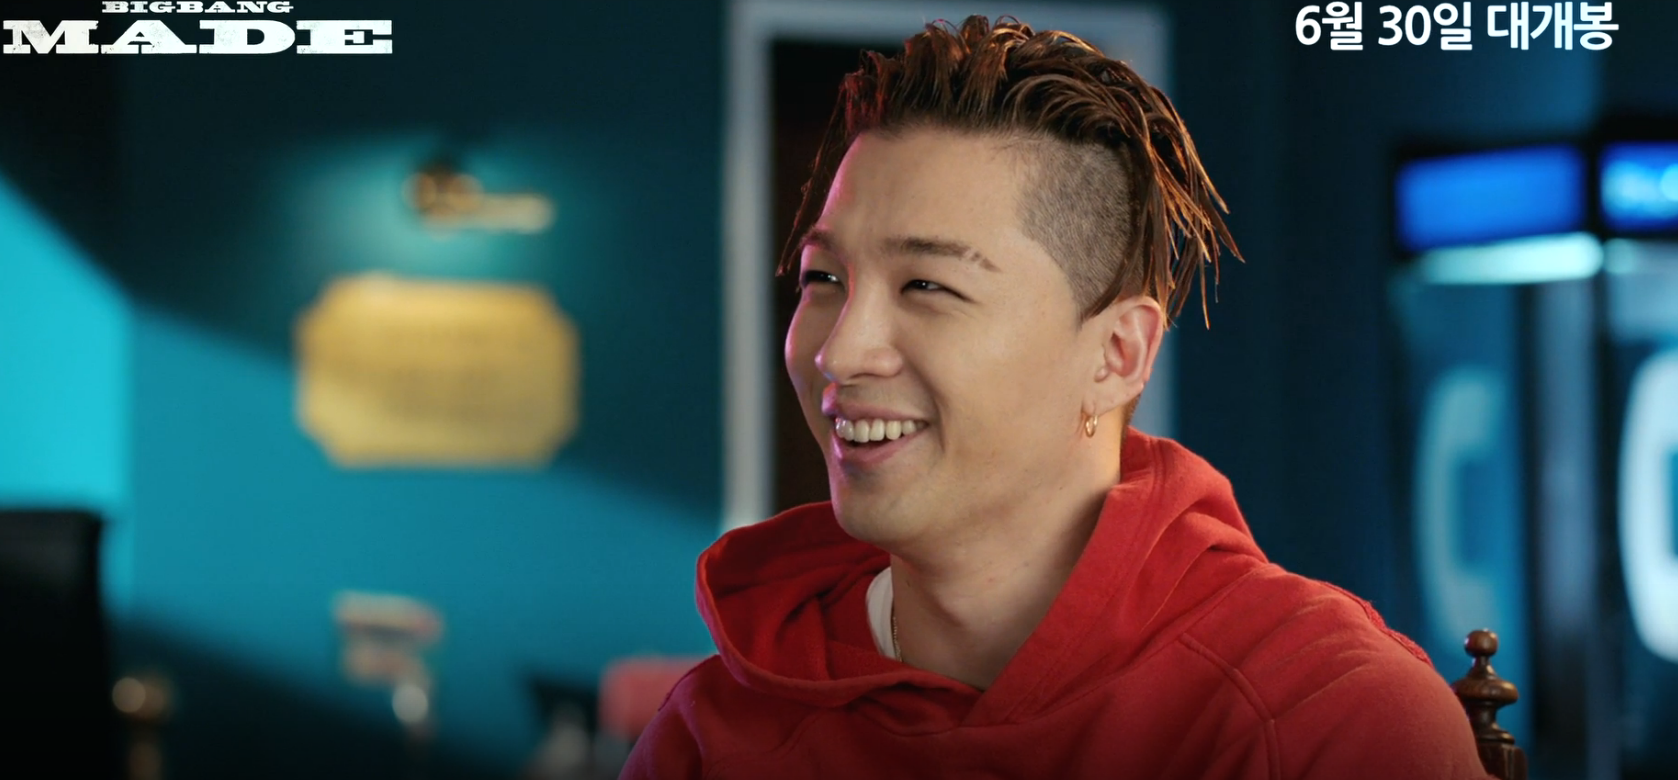 taeyang bigbang made 000